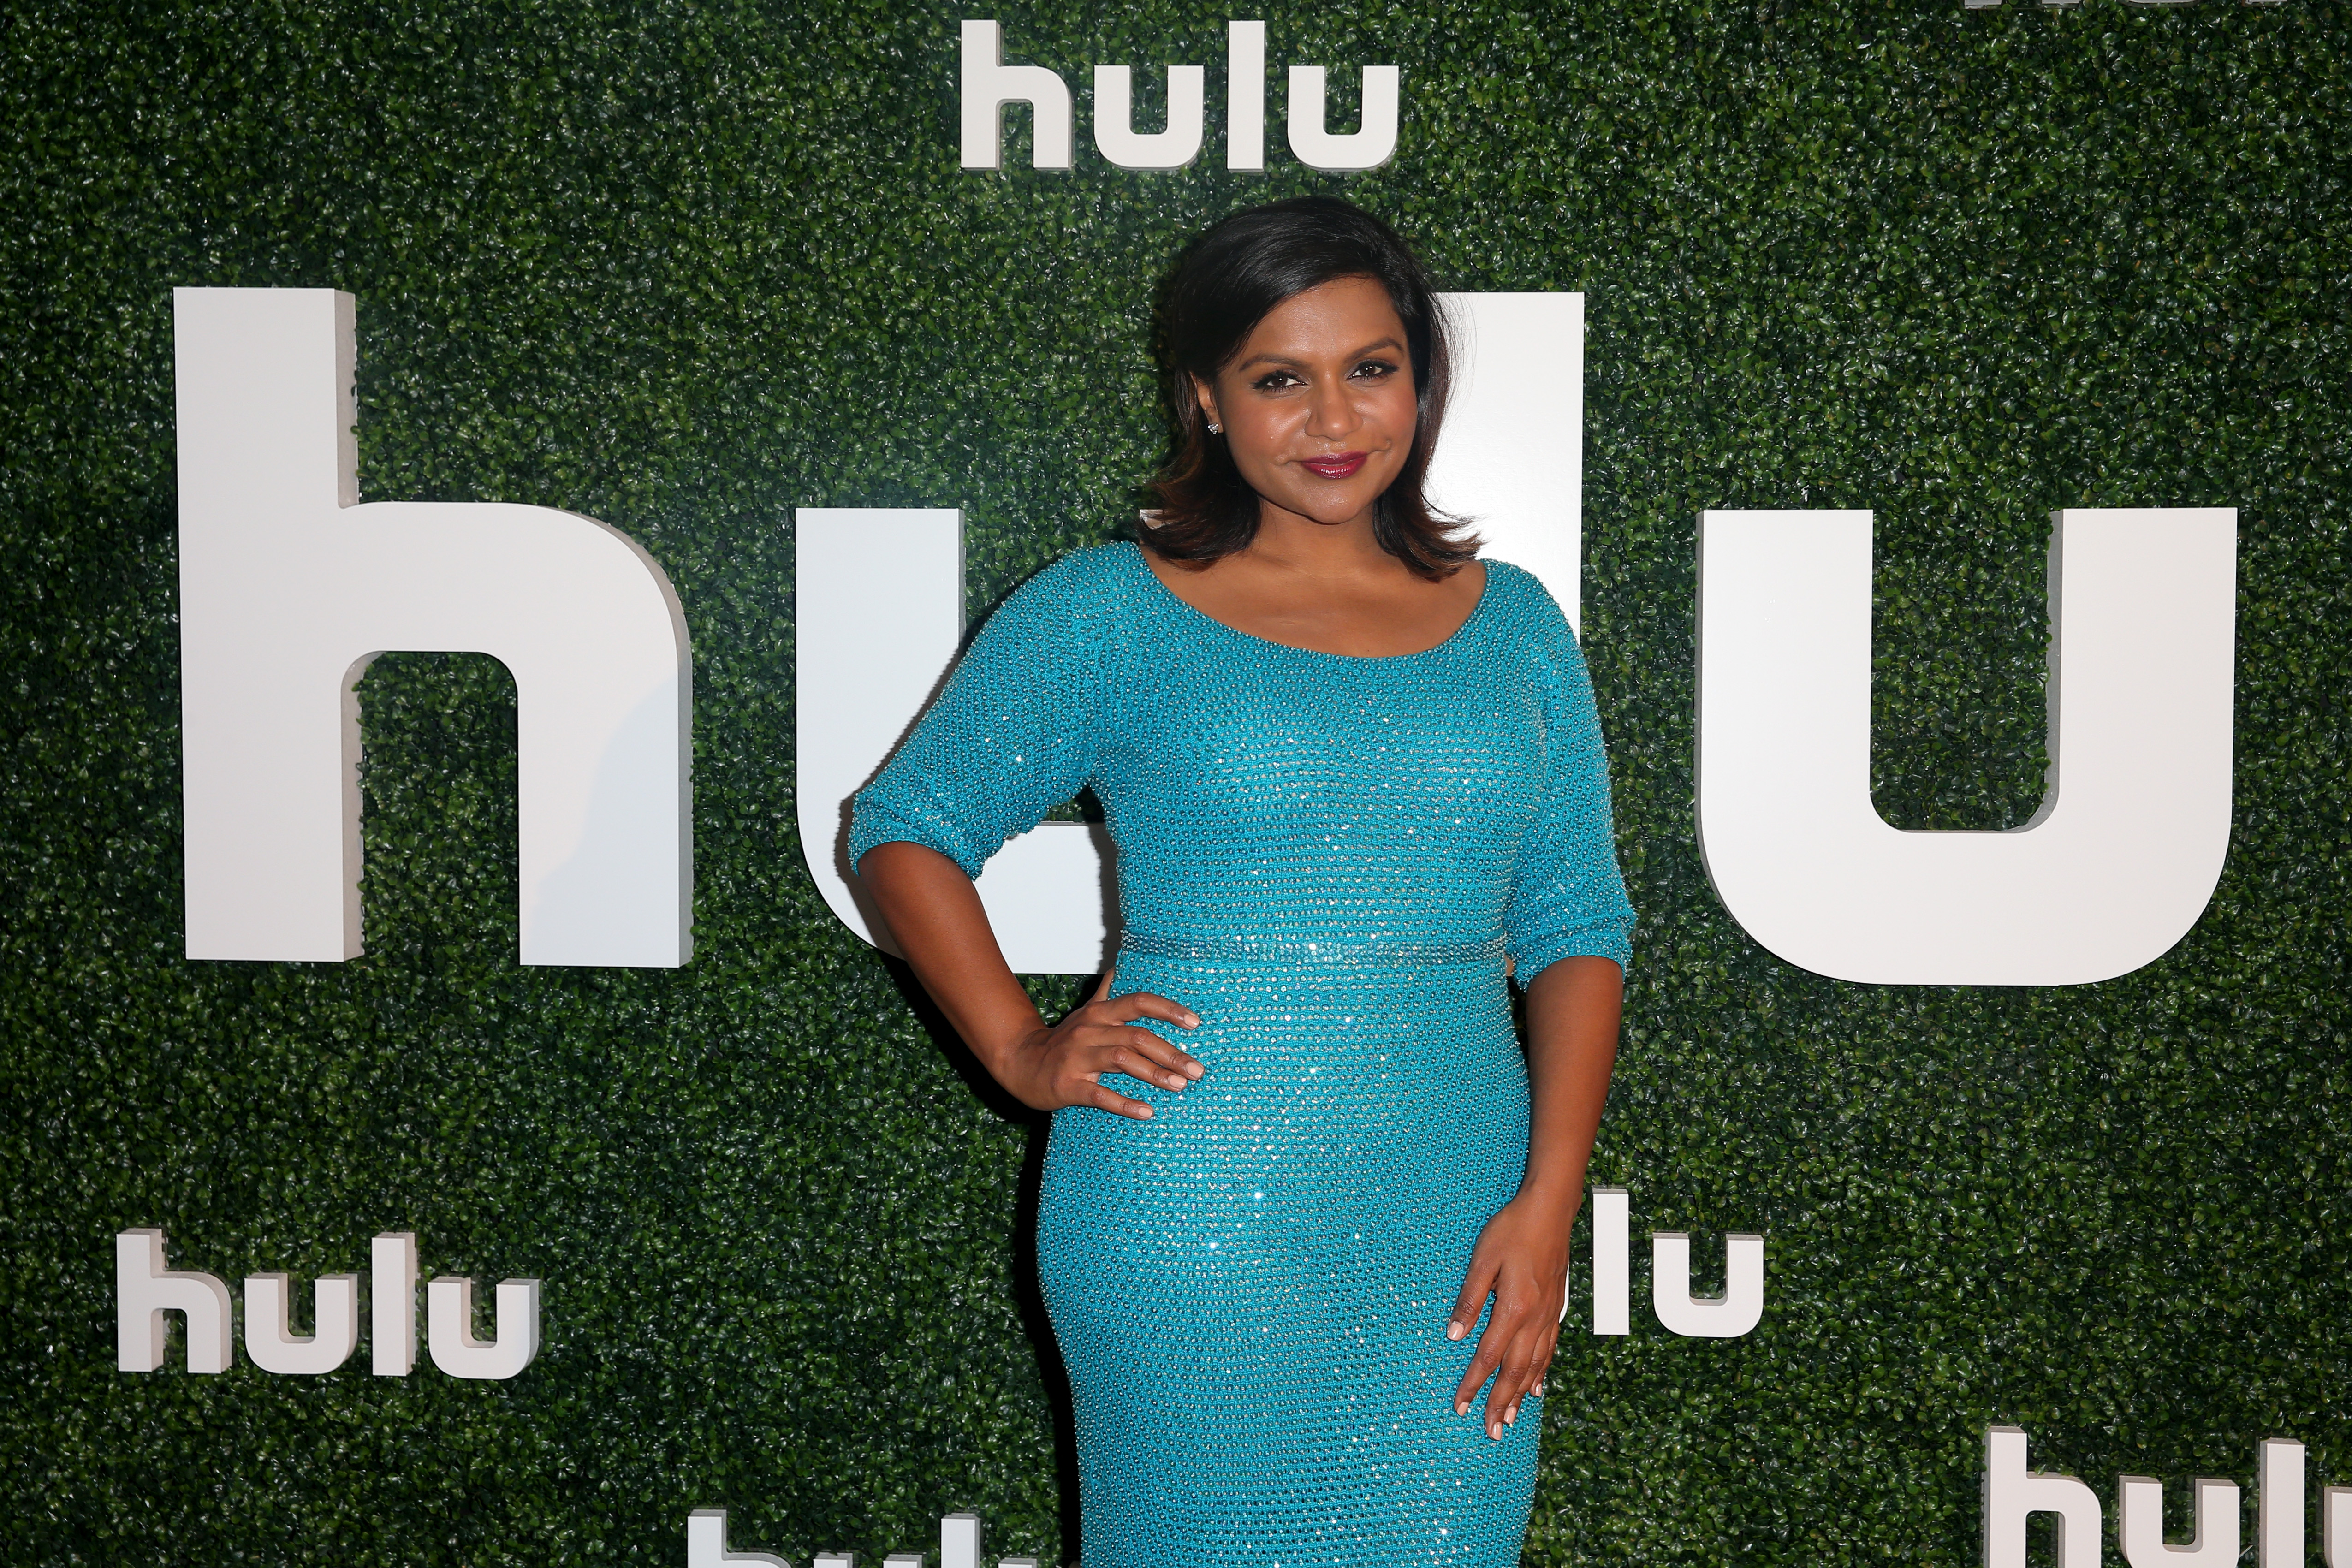 Actress and Executive Producer Mindy Kaling attends the Hulu 2015 Summer TCA Presentation at The Beverly Hilton Hotel on August 9, 2015 in Beverly Hills, California.